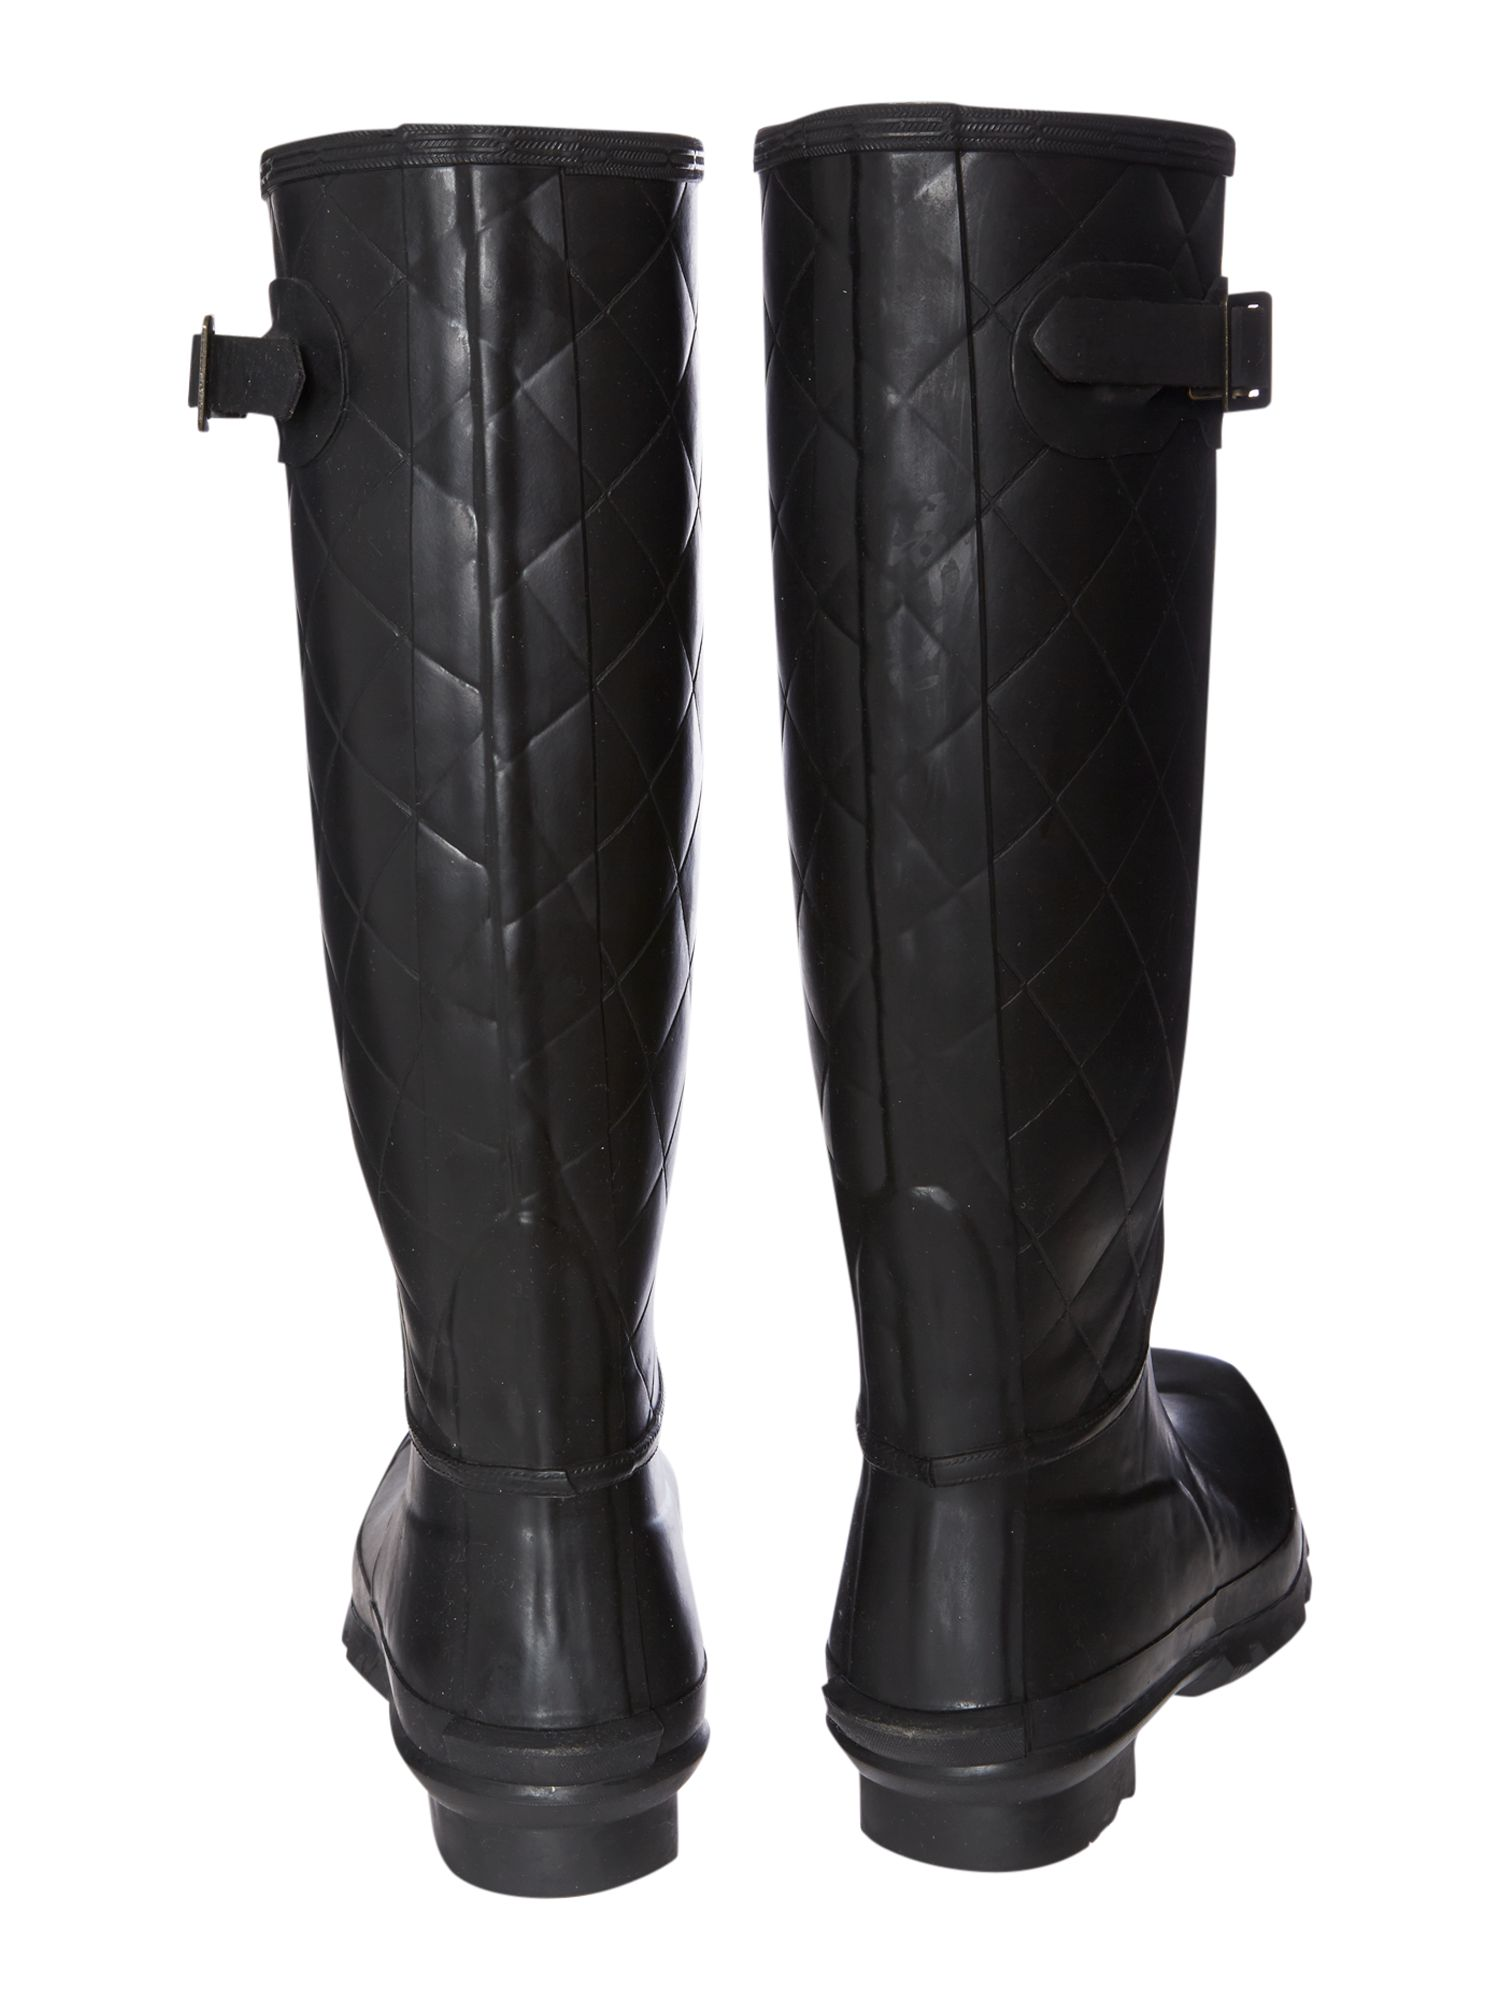 Setter quilted welly